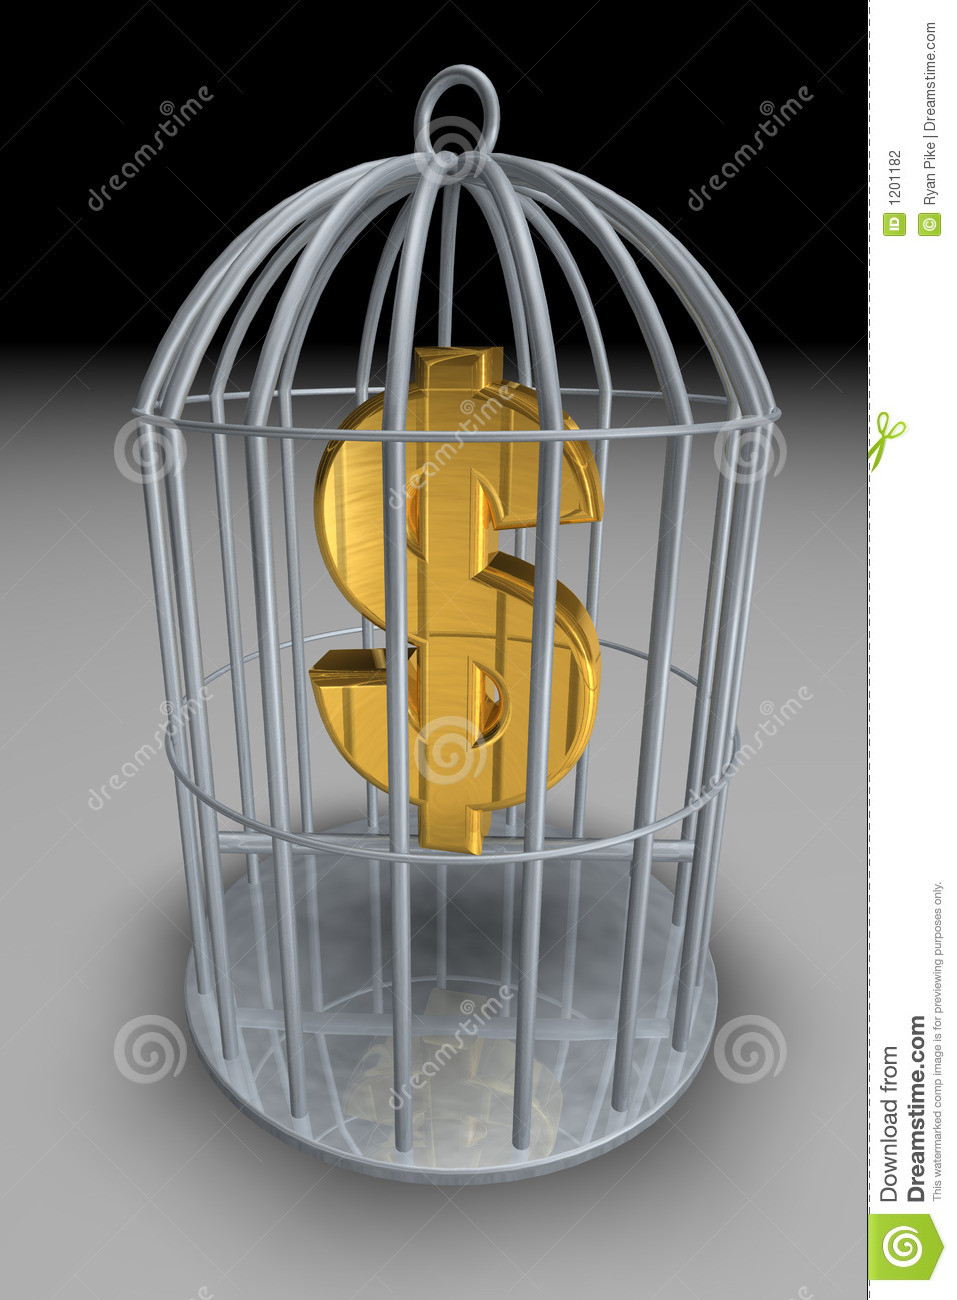 Money Cage >> Trapped Money Stock Illustration Illustration Of Payment 1201182